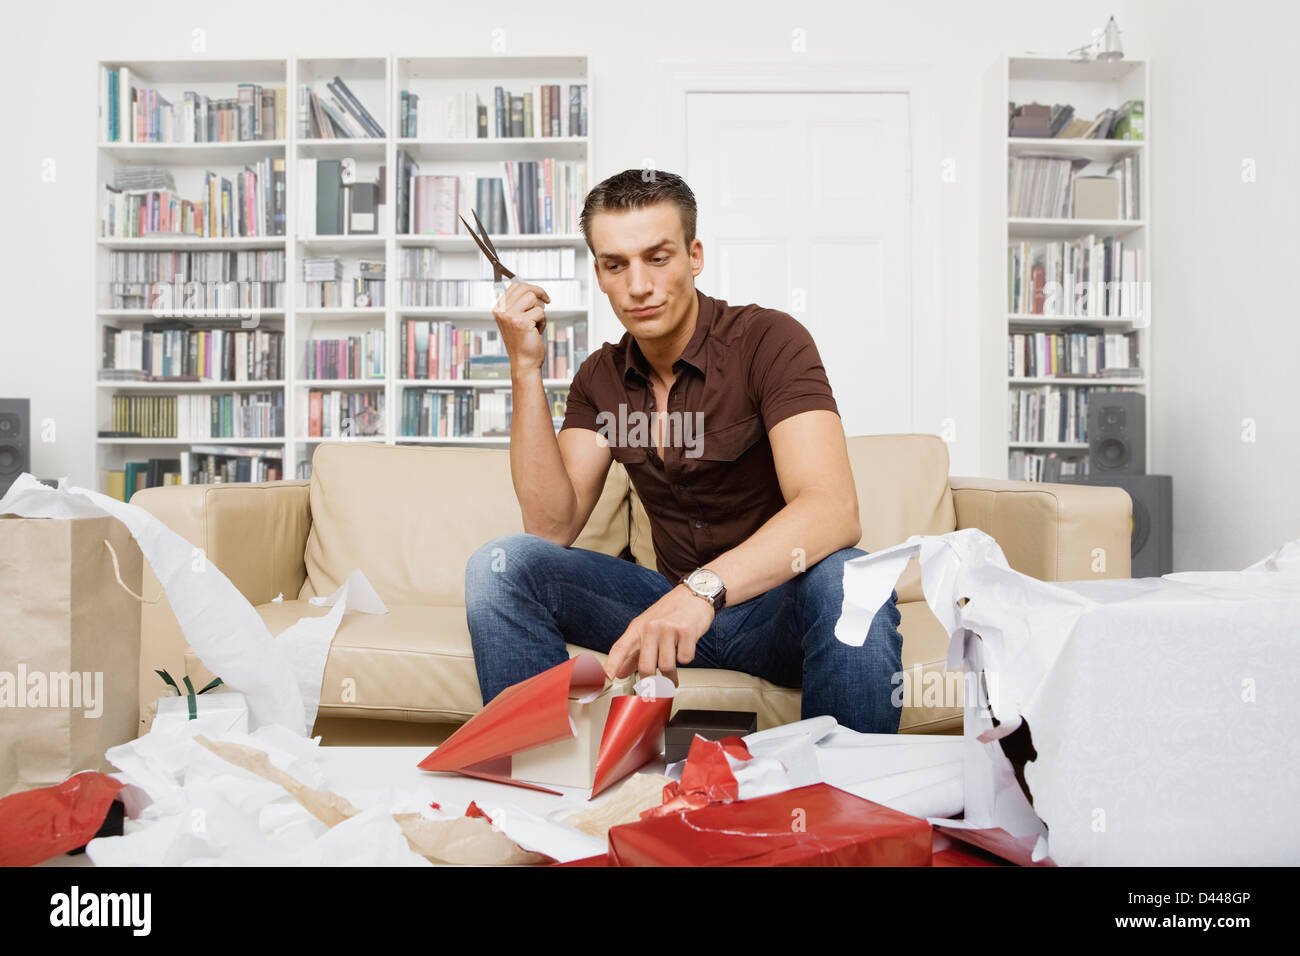 hunky dude doesn't know how to wrap presents - Stock Image